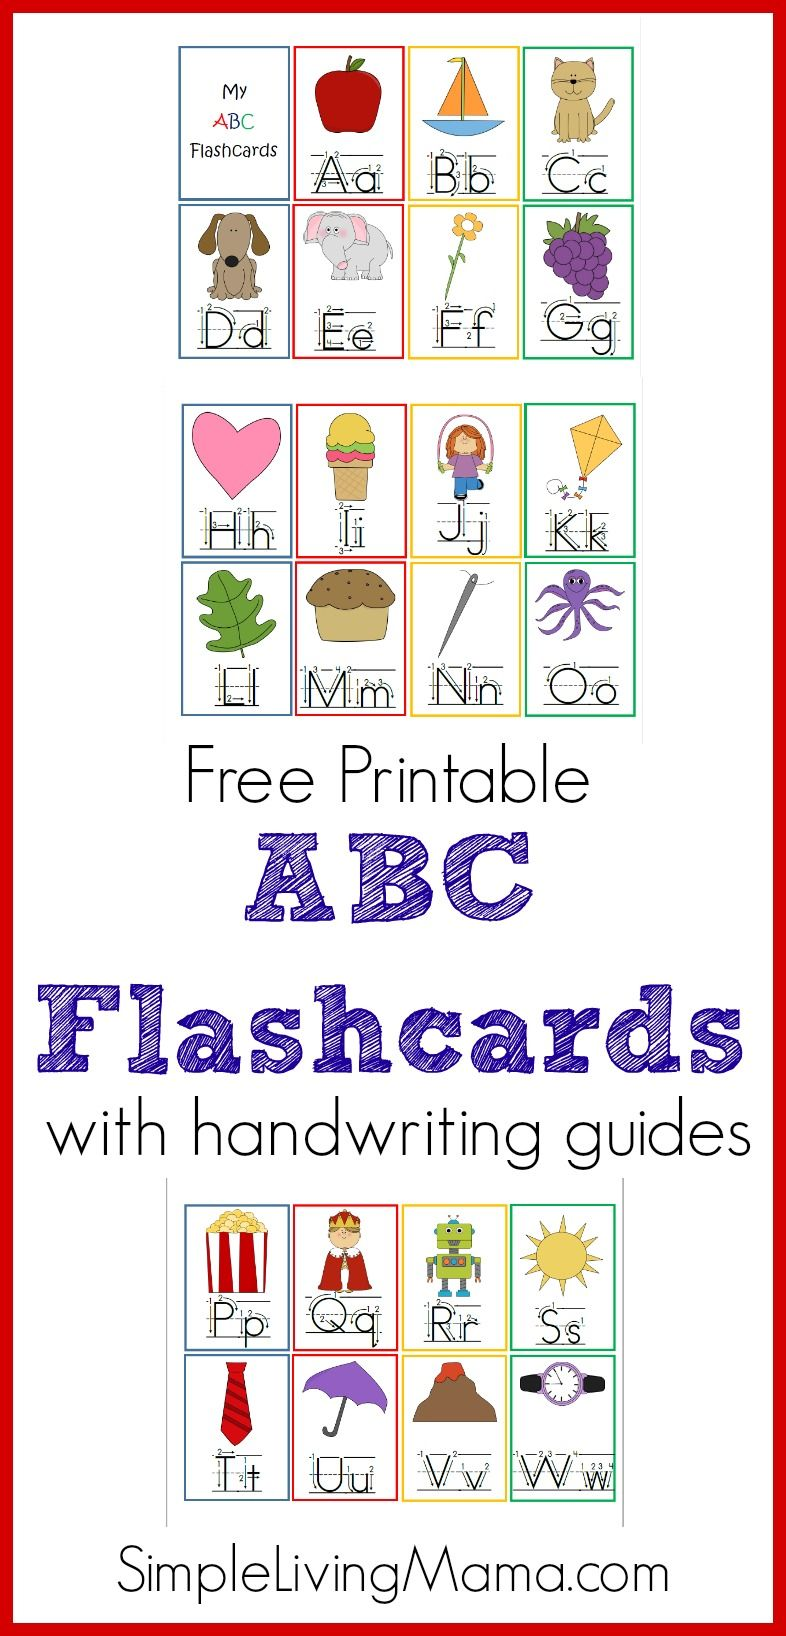 image about Free Printable Abc Flash Cards called Printable ABC Flashcards for Preschoolers The Community BOARD